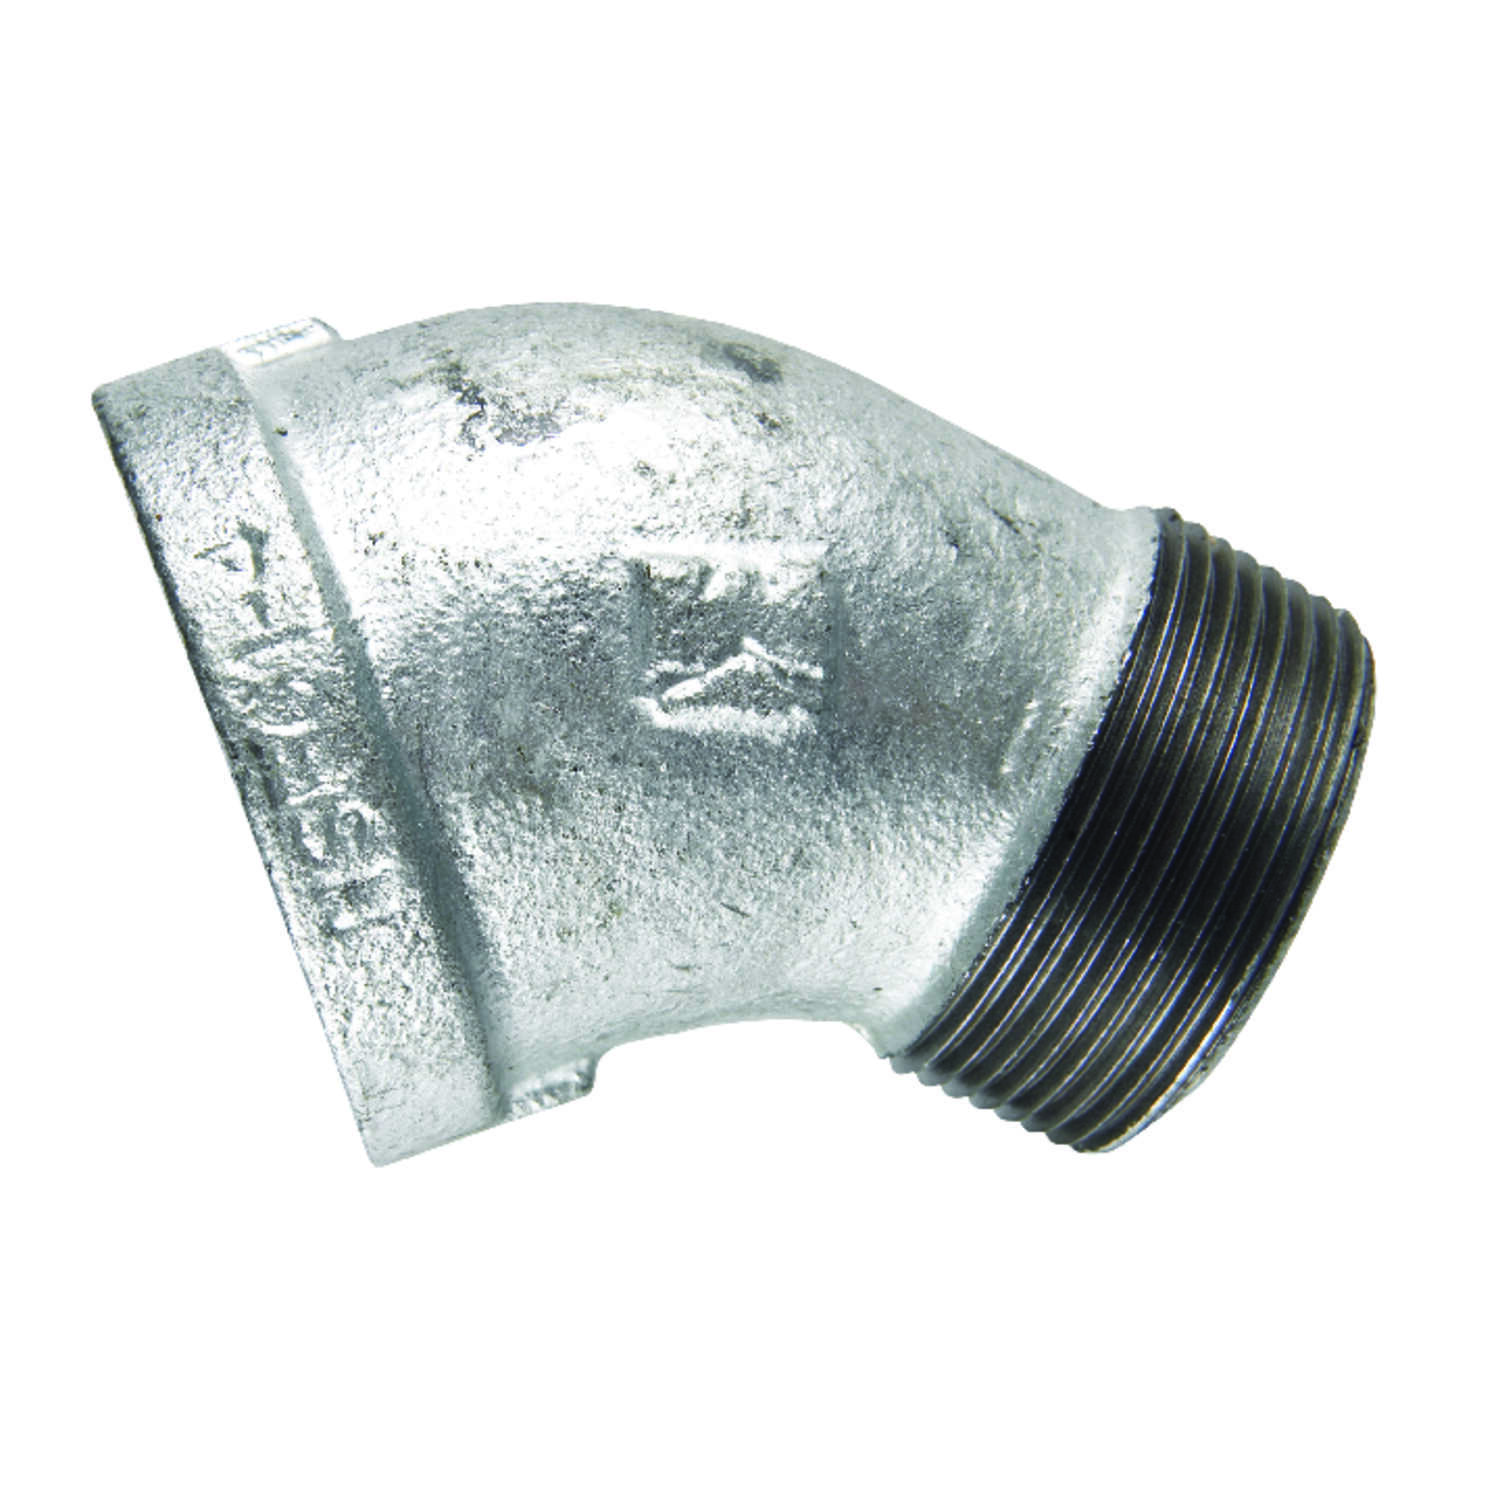 B & K  1-1/4 in. FPT   x 1-1/4 in. Dia. MPT  Galvanized  Malleable Iron  Street Elbow